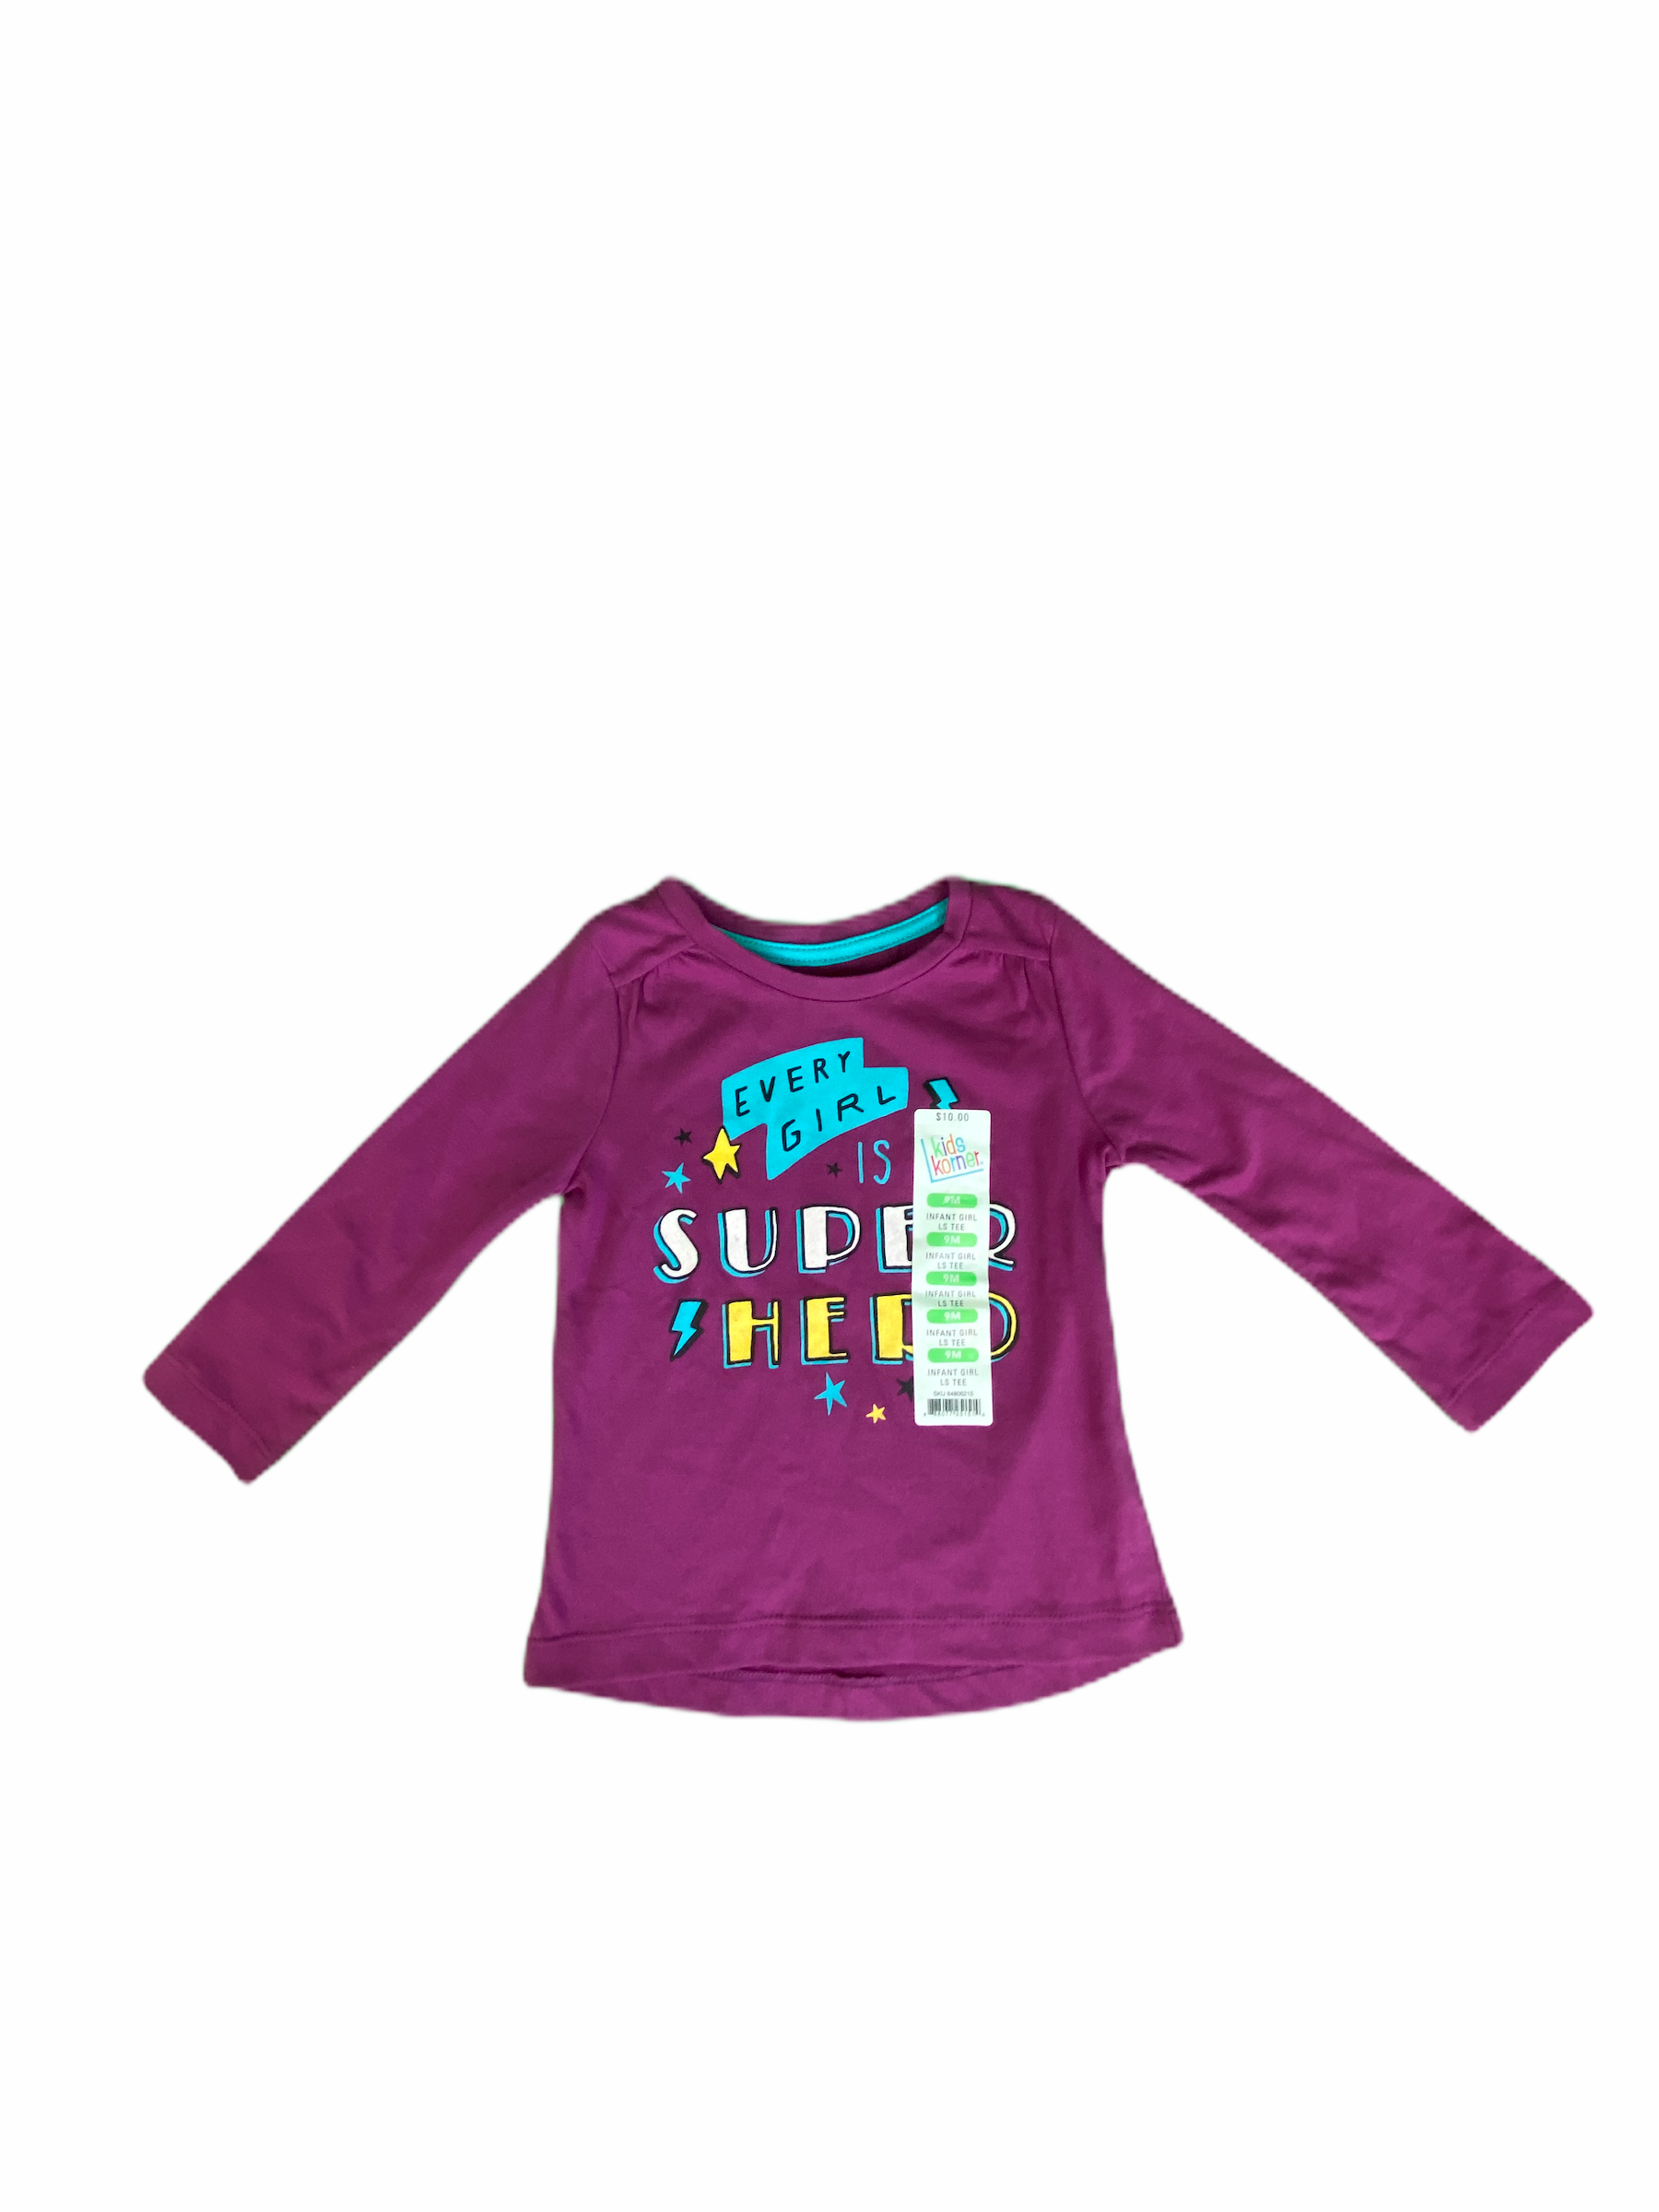 Kids Korner Long Sleeve Purple Tee NWT (9M Girls)